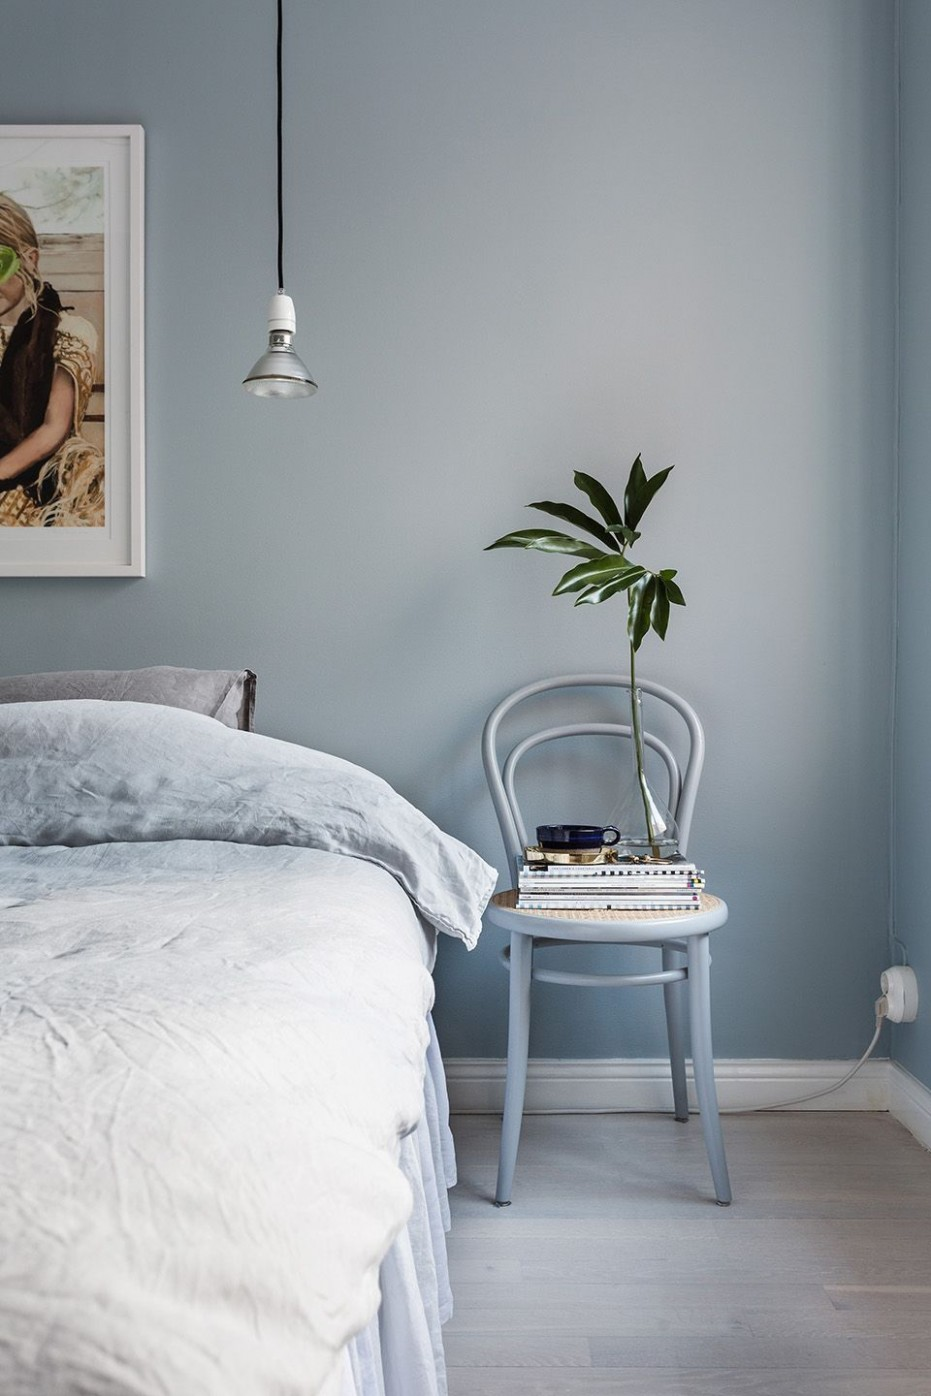 12 Best Blue Rooms - Decor Ideas for Light and Dark Blue Rooms - Bedroom Ideas Light Blue Walls